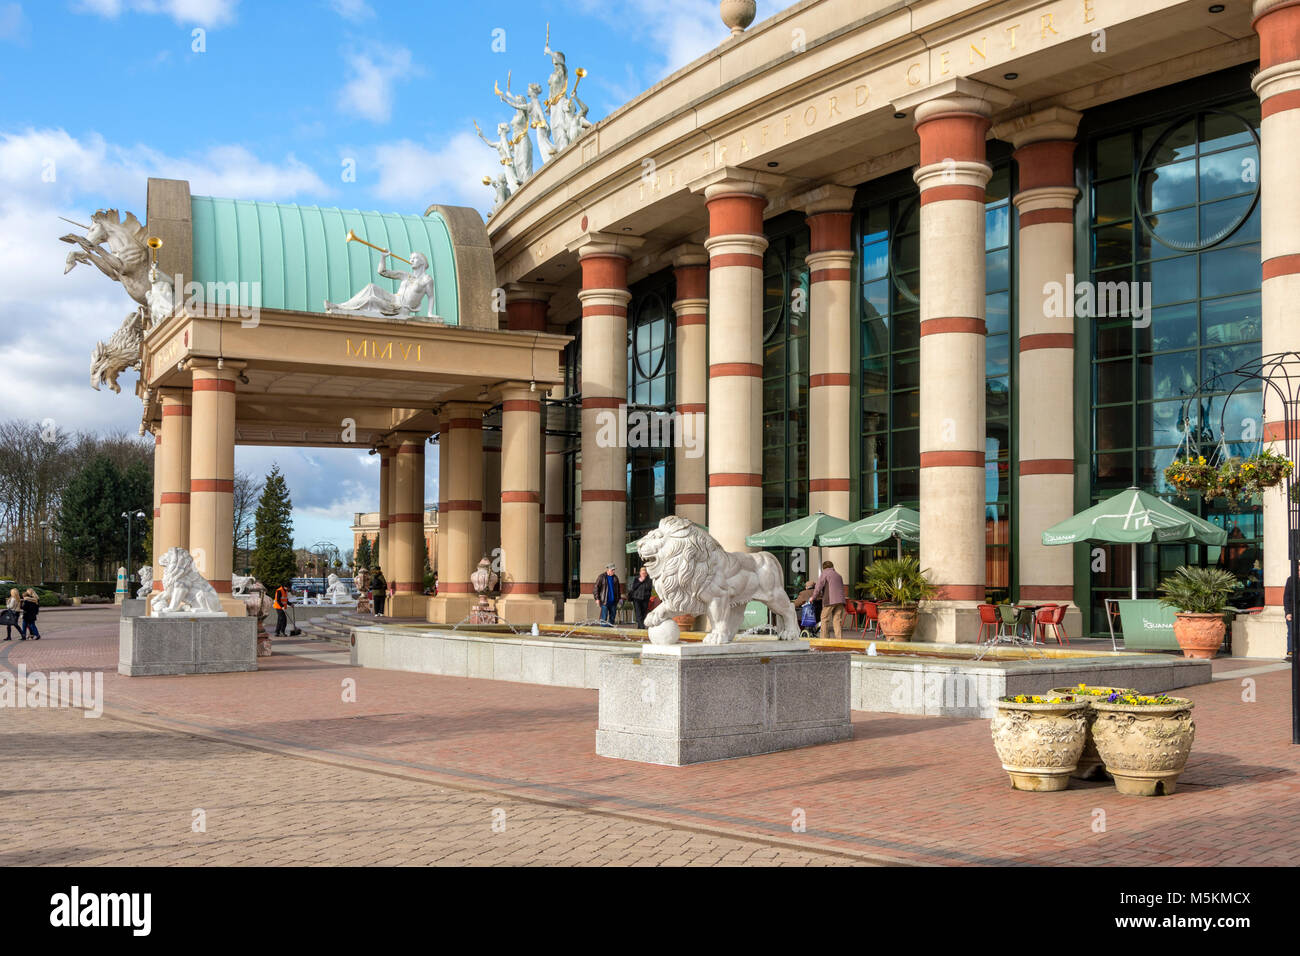 Entrance to the intu Trafford Centre, Manchester, UK - Stock Image